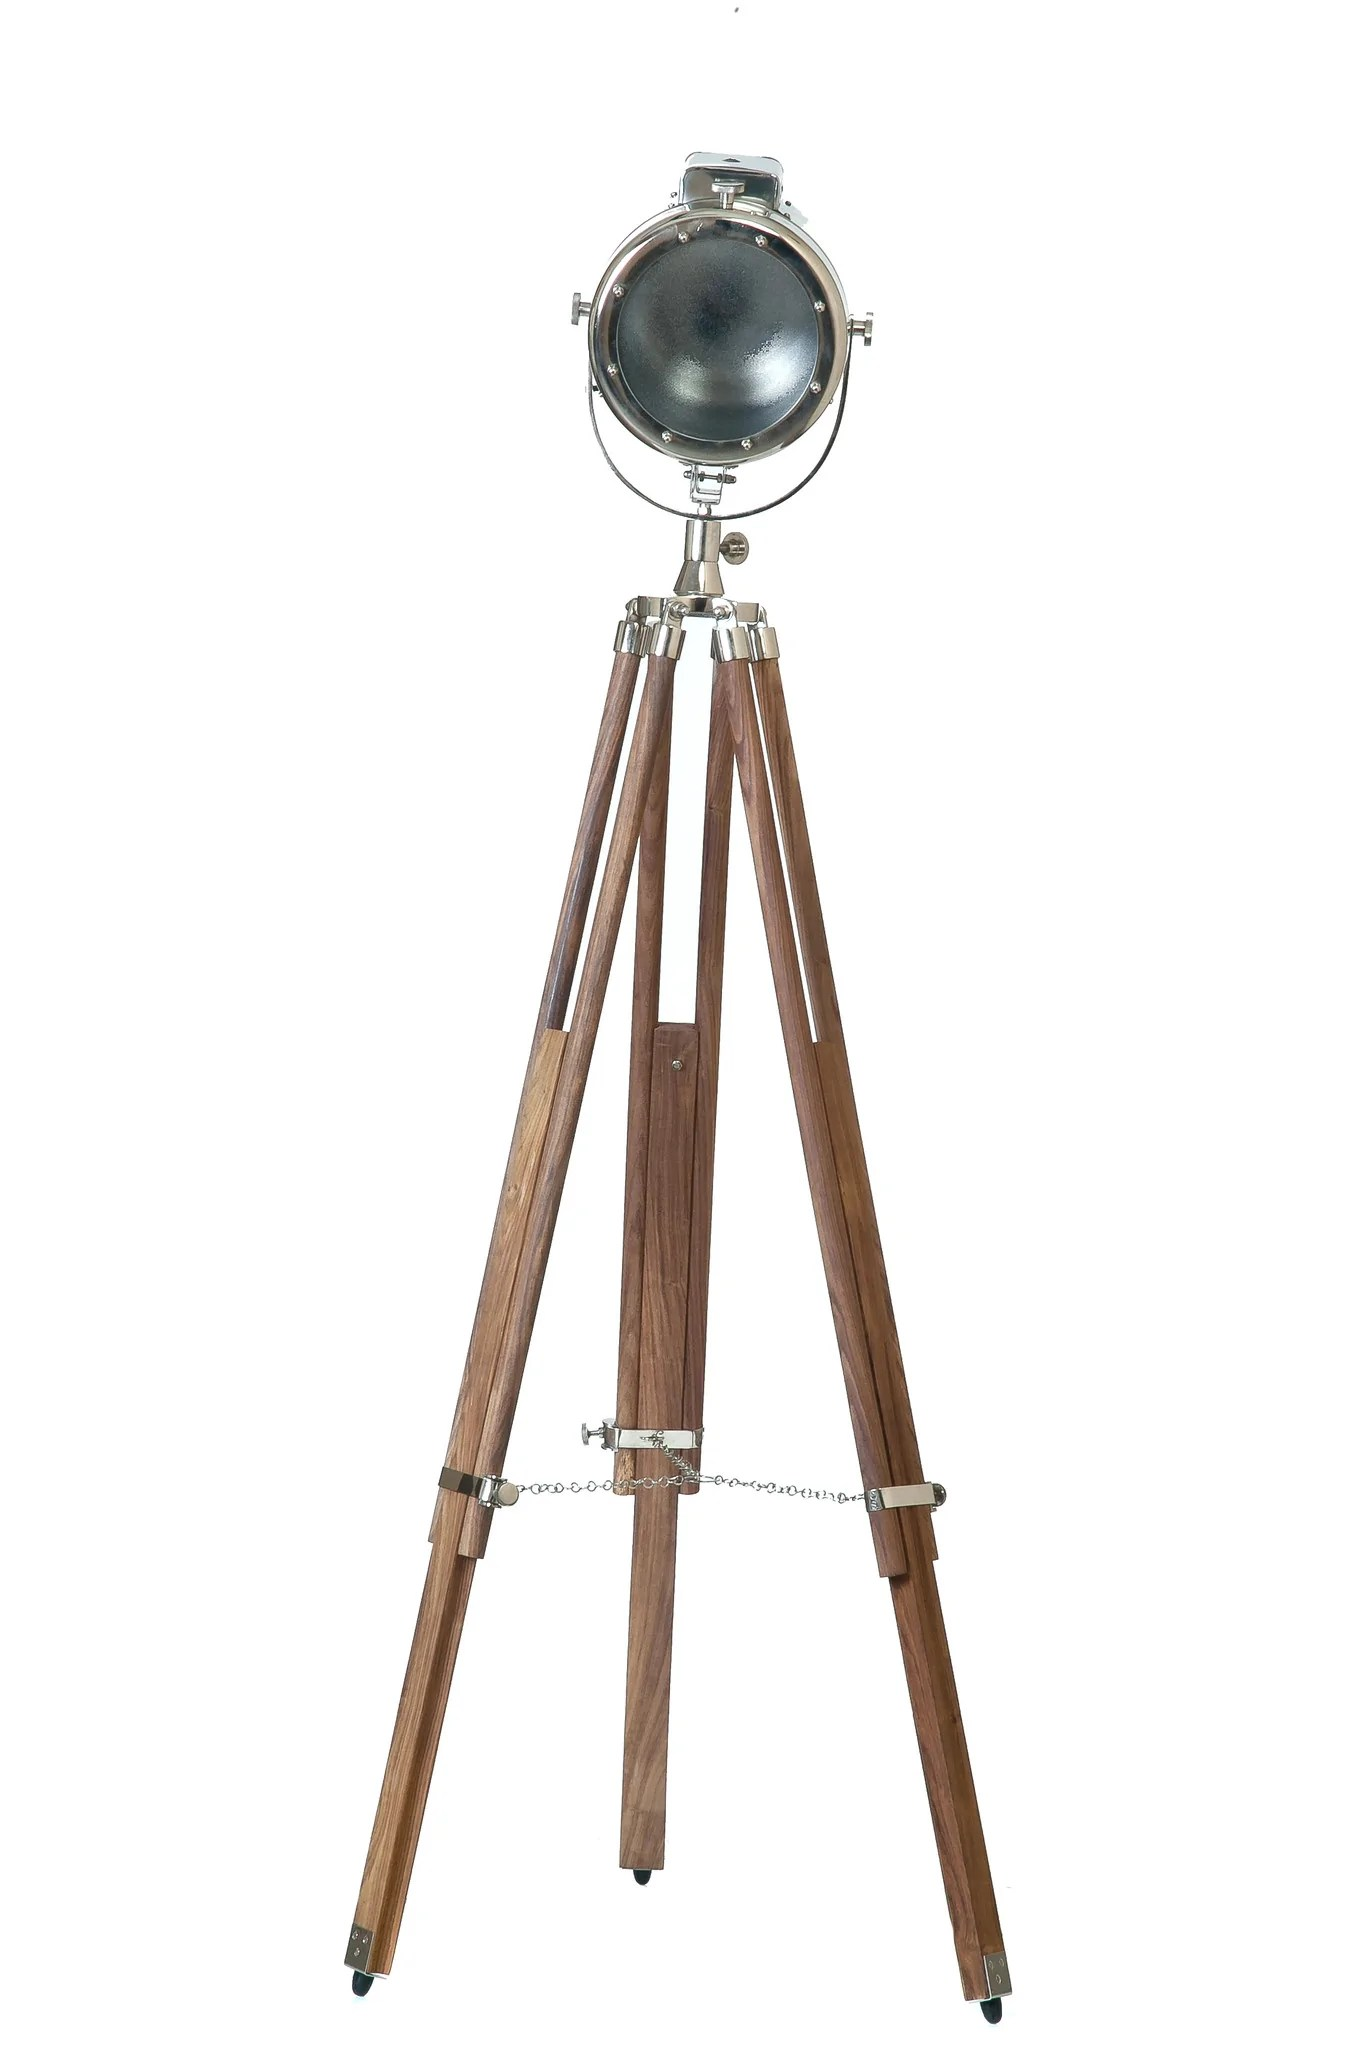 Winsome Lightenup Tripod Lamp Buy Online At Prices Lightenup Vintage Tripod Lamp Buy Tripod Ipad Buy Tripod Plate dpreview Best Buy Tripod